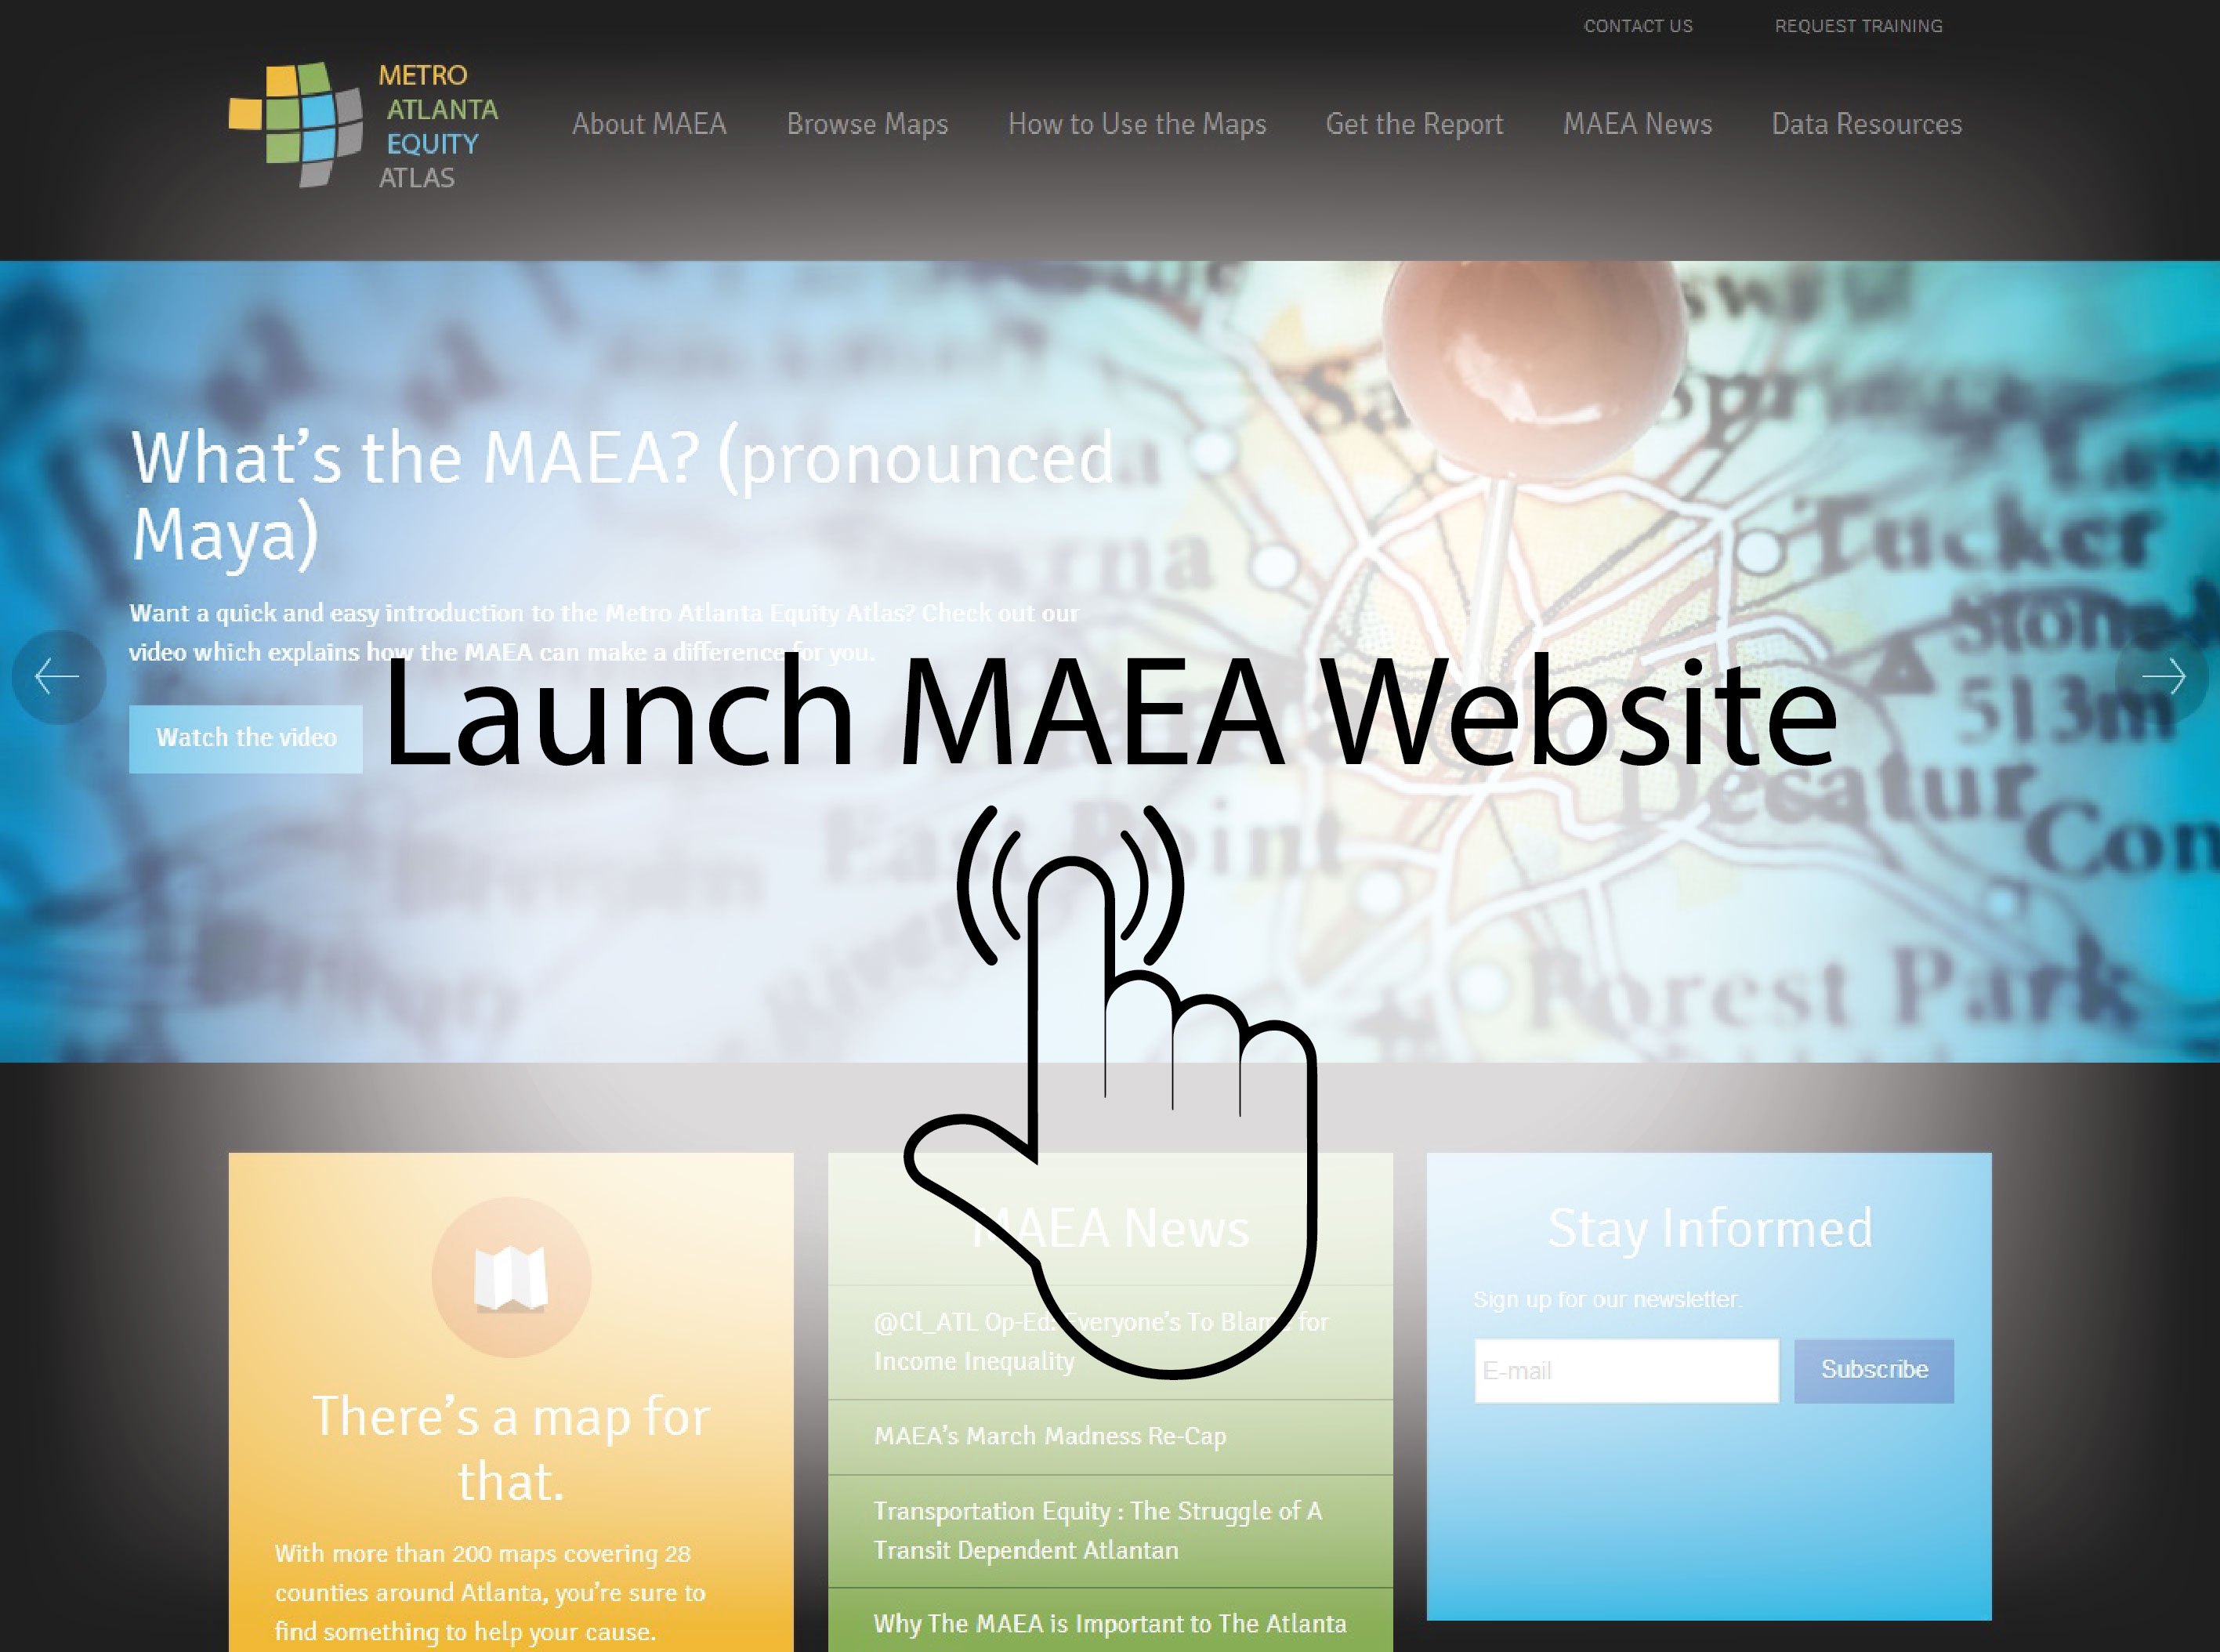 MAEA Featured on Federal Reserve Bank of Atlanta Website as Online Tool to Aid Policymakers